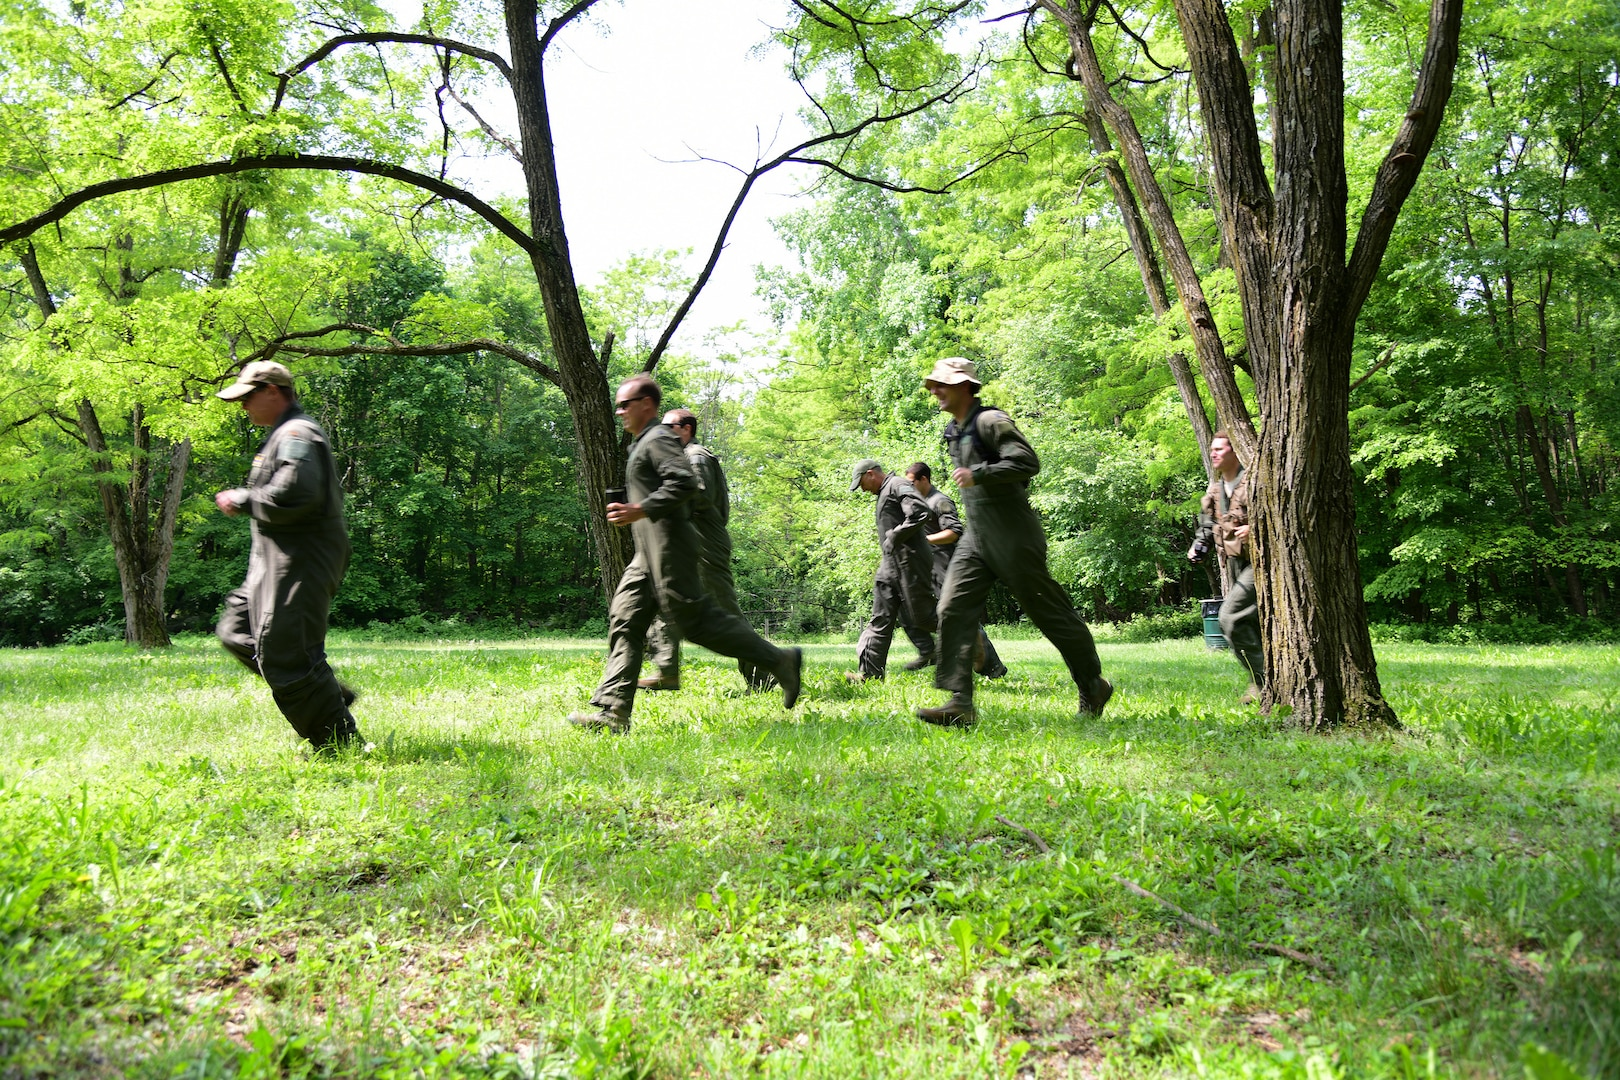 Airmen assigned to the 105th Airlift Wing participate in combat survival training at Plum Point County Park, New Windsor, New York, June 1, 2019. The training equips aircrews with the skill necessary to survive in hostile environments.